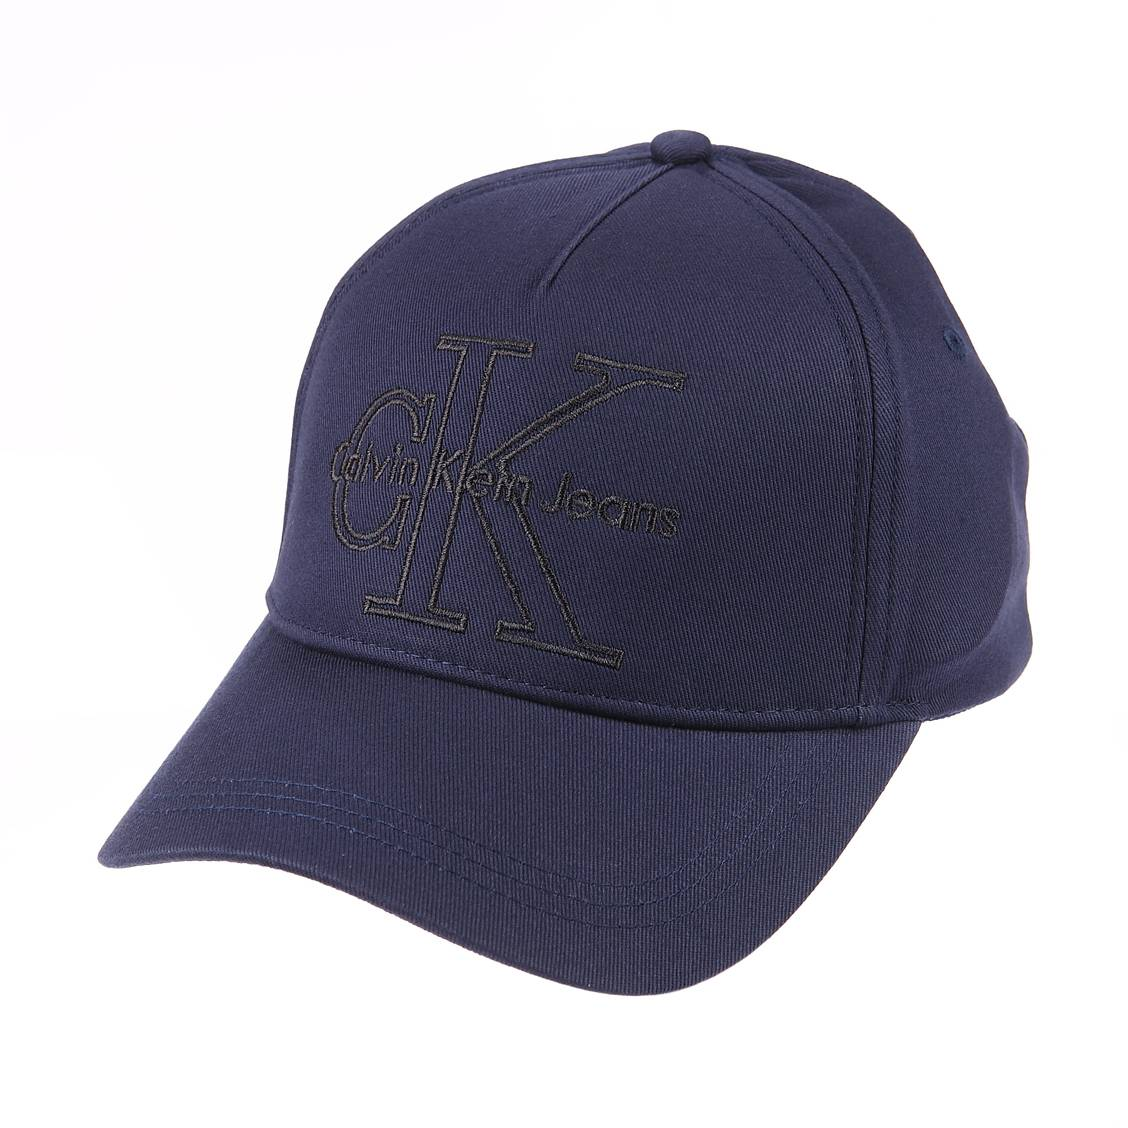 Casquette  j re-issue en coton bleu marine